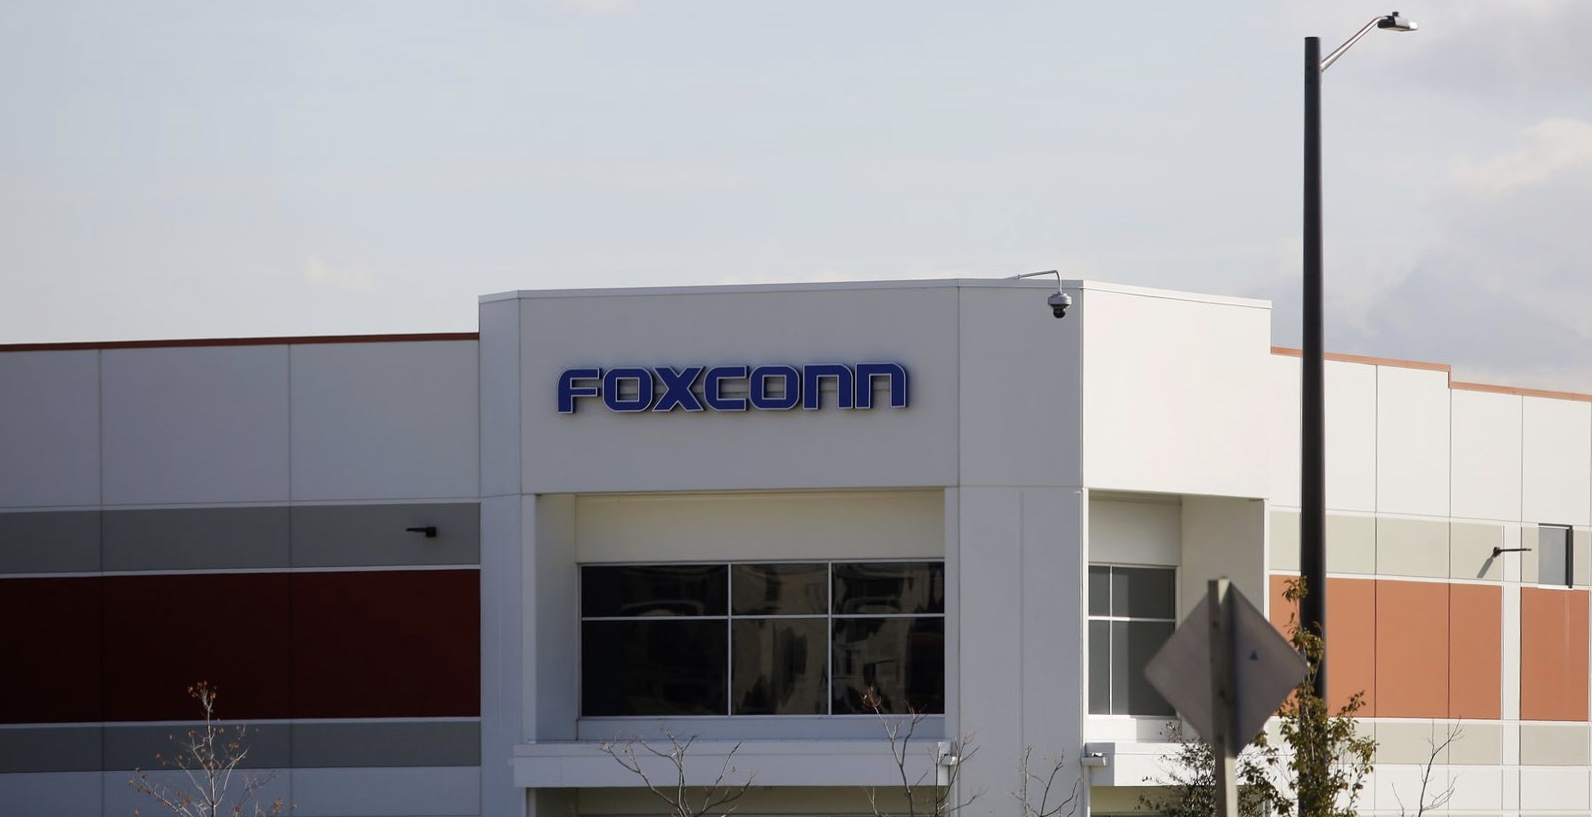 Foxconn finally admits its empty Wisconsin 'innovation centers' aren't being developed